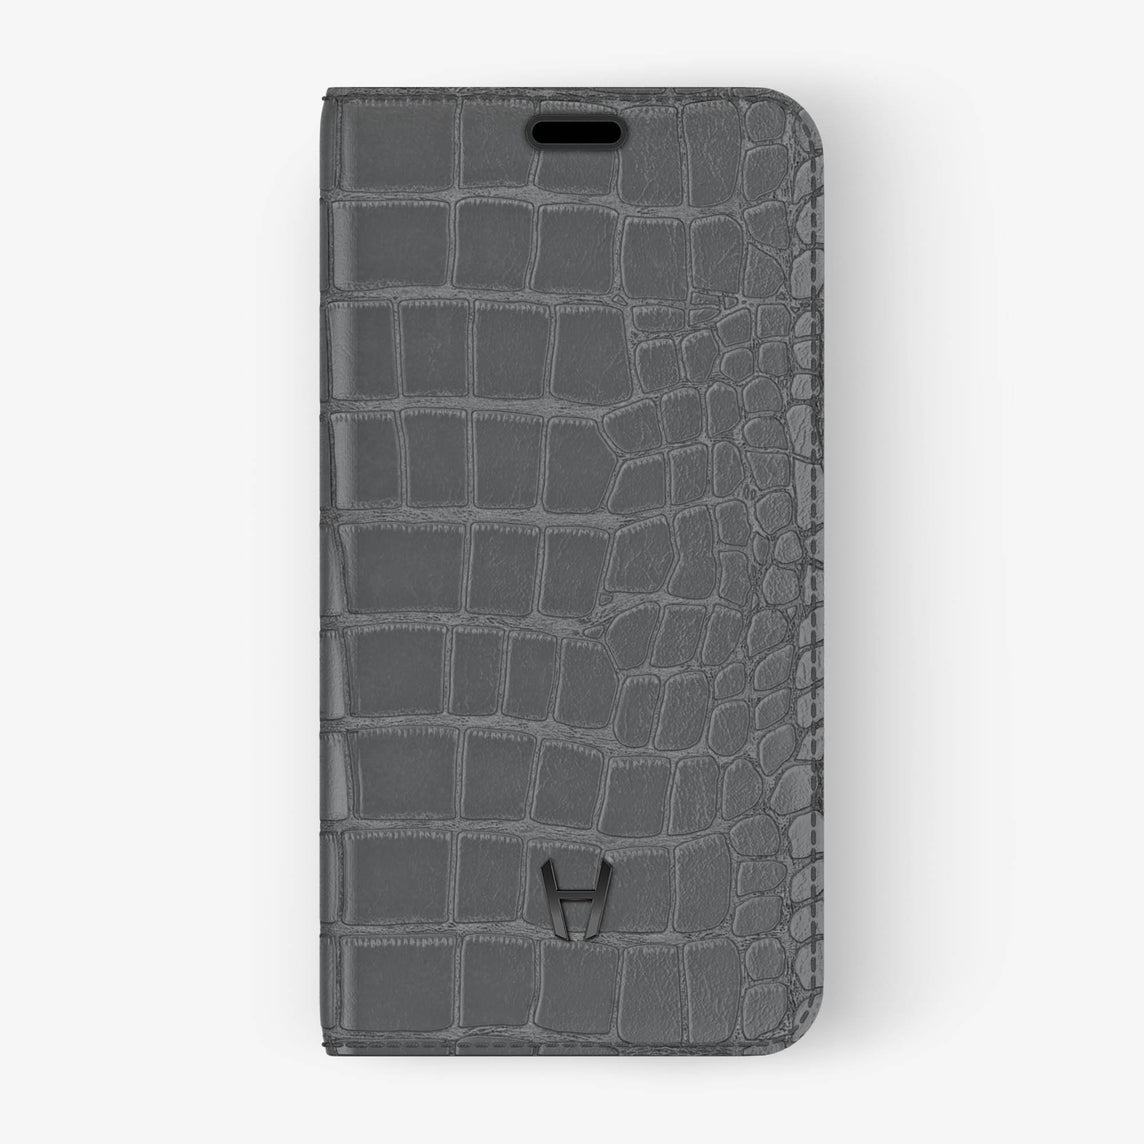 Alligator Folio Case iPhone X/Xs | Grey - Black without-personalization